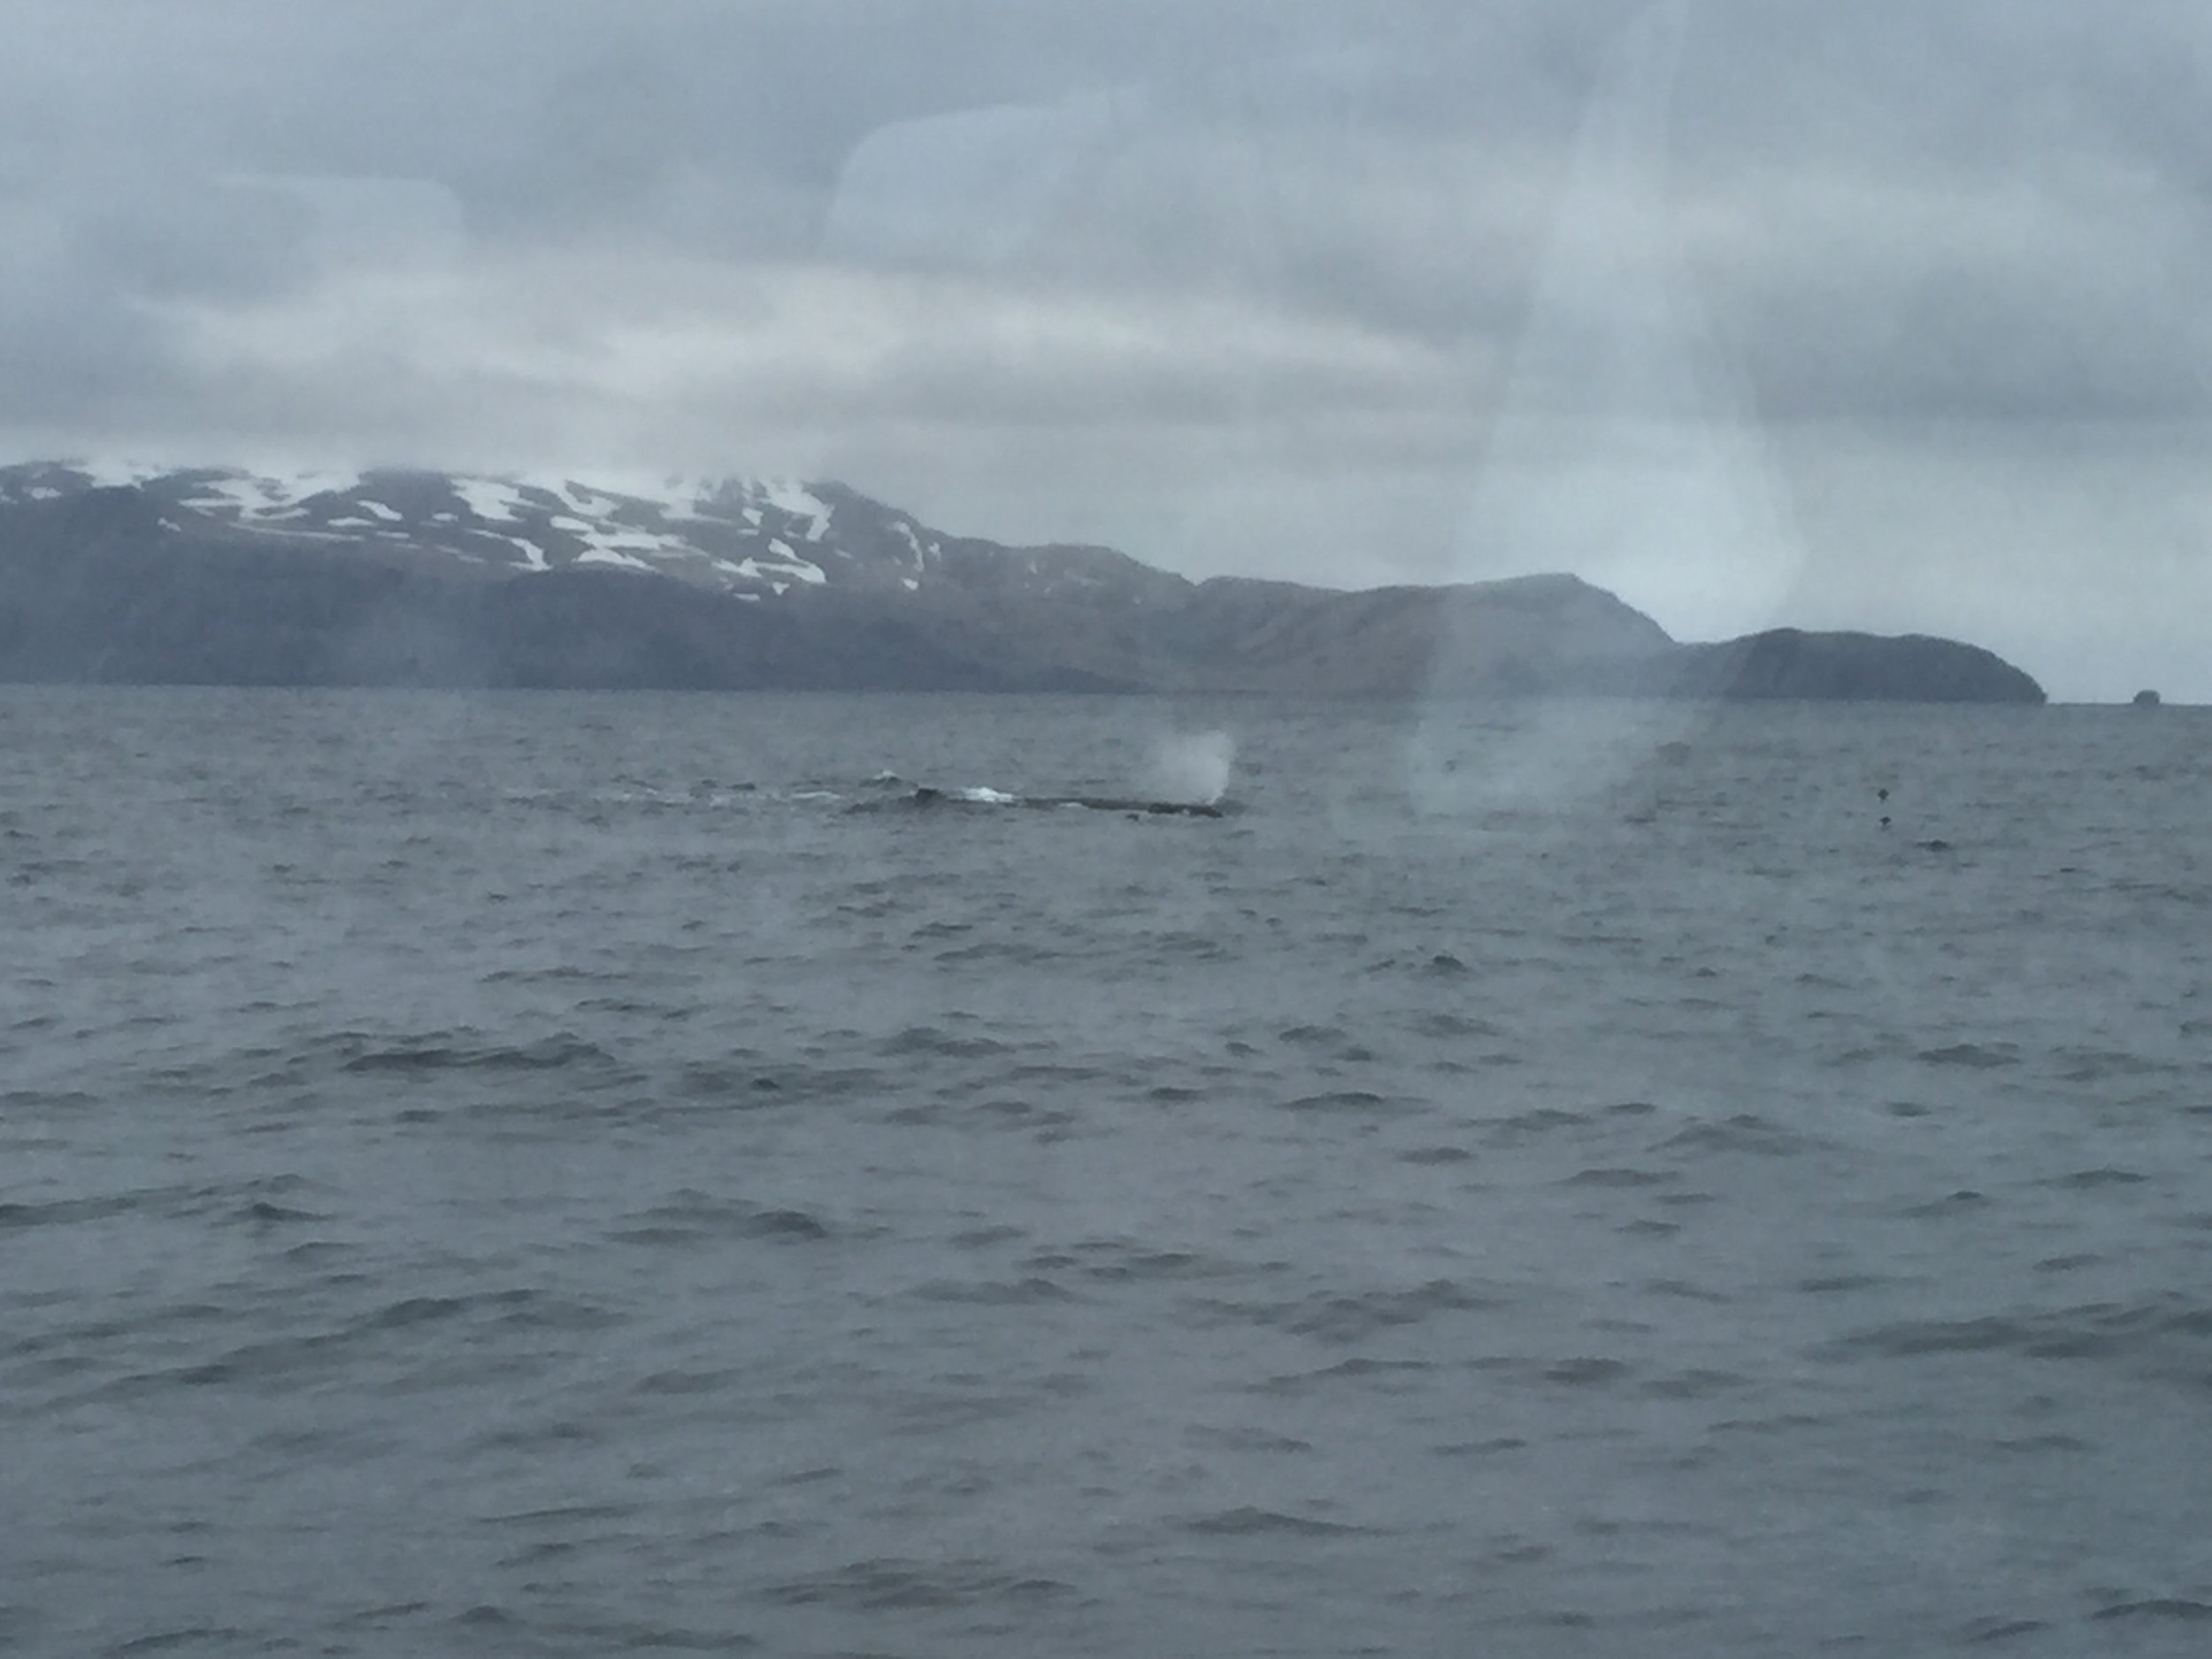 A sperm whale surfaces less than 100m from the boat as we passed some islands